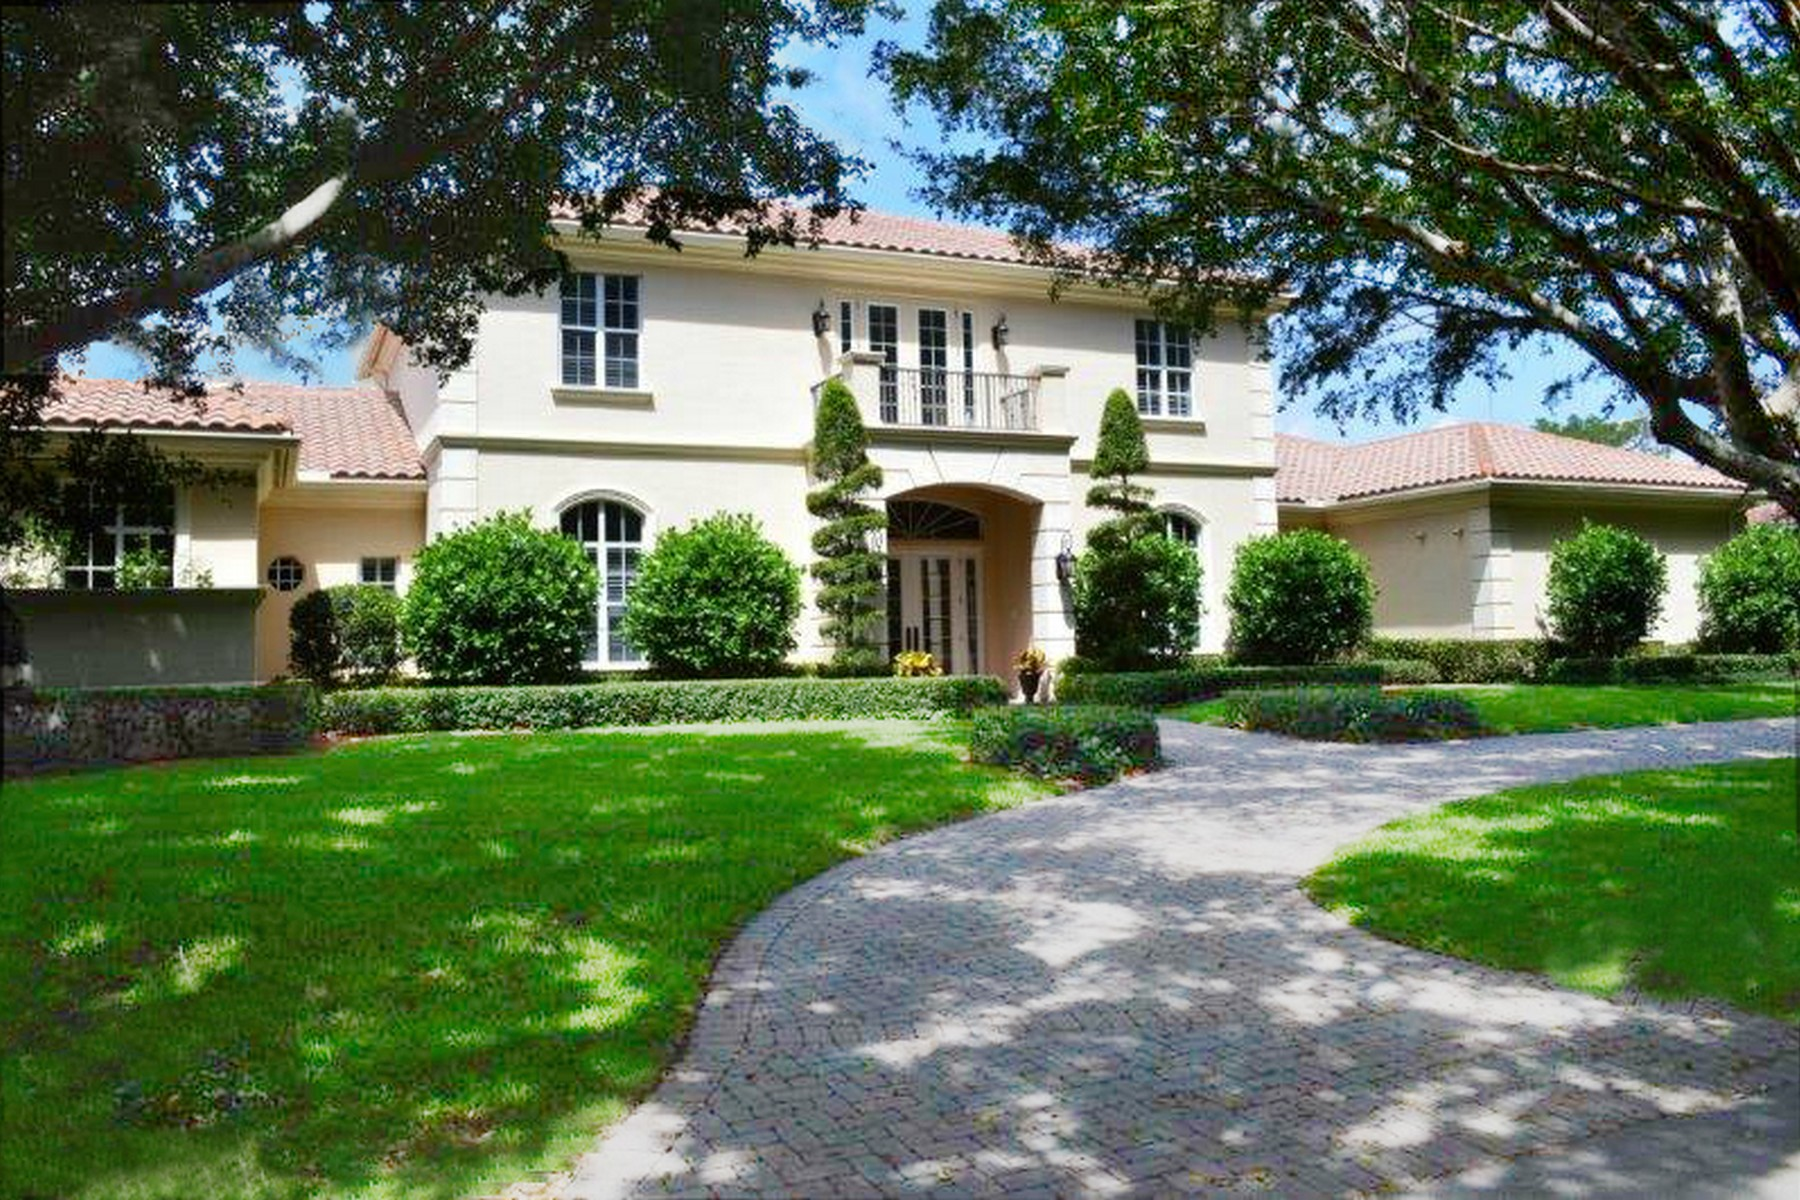 Additional photo for property listing at 12345 Banyan Road  North Palm Beach, Florida 33408 United States